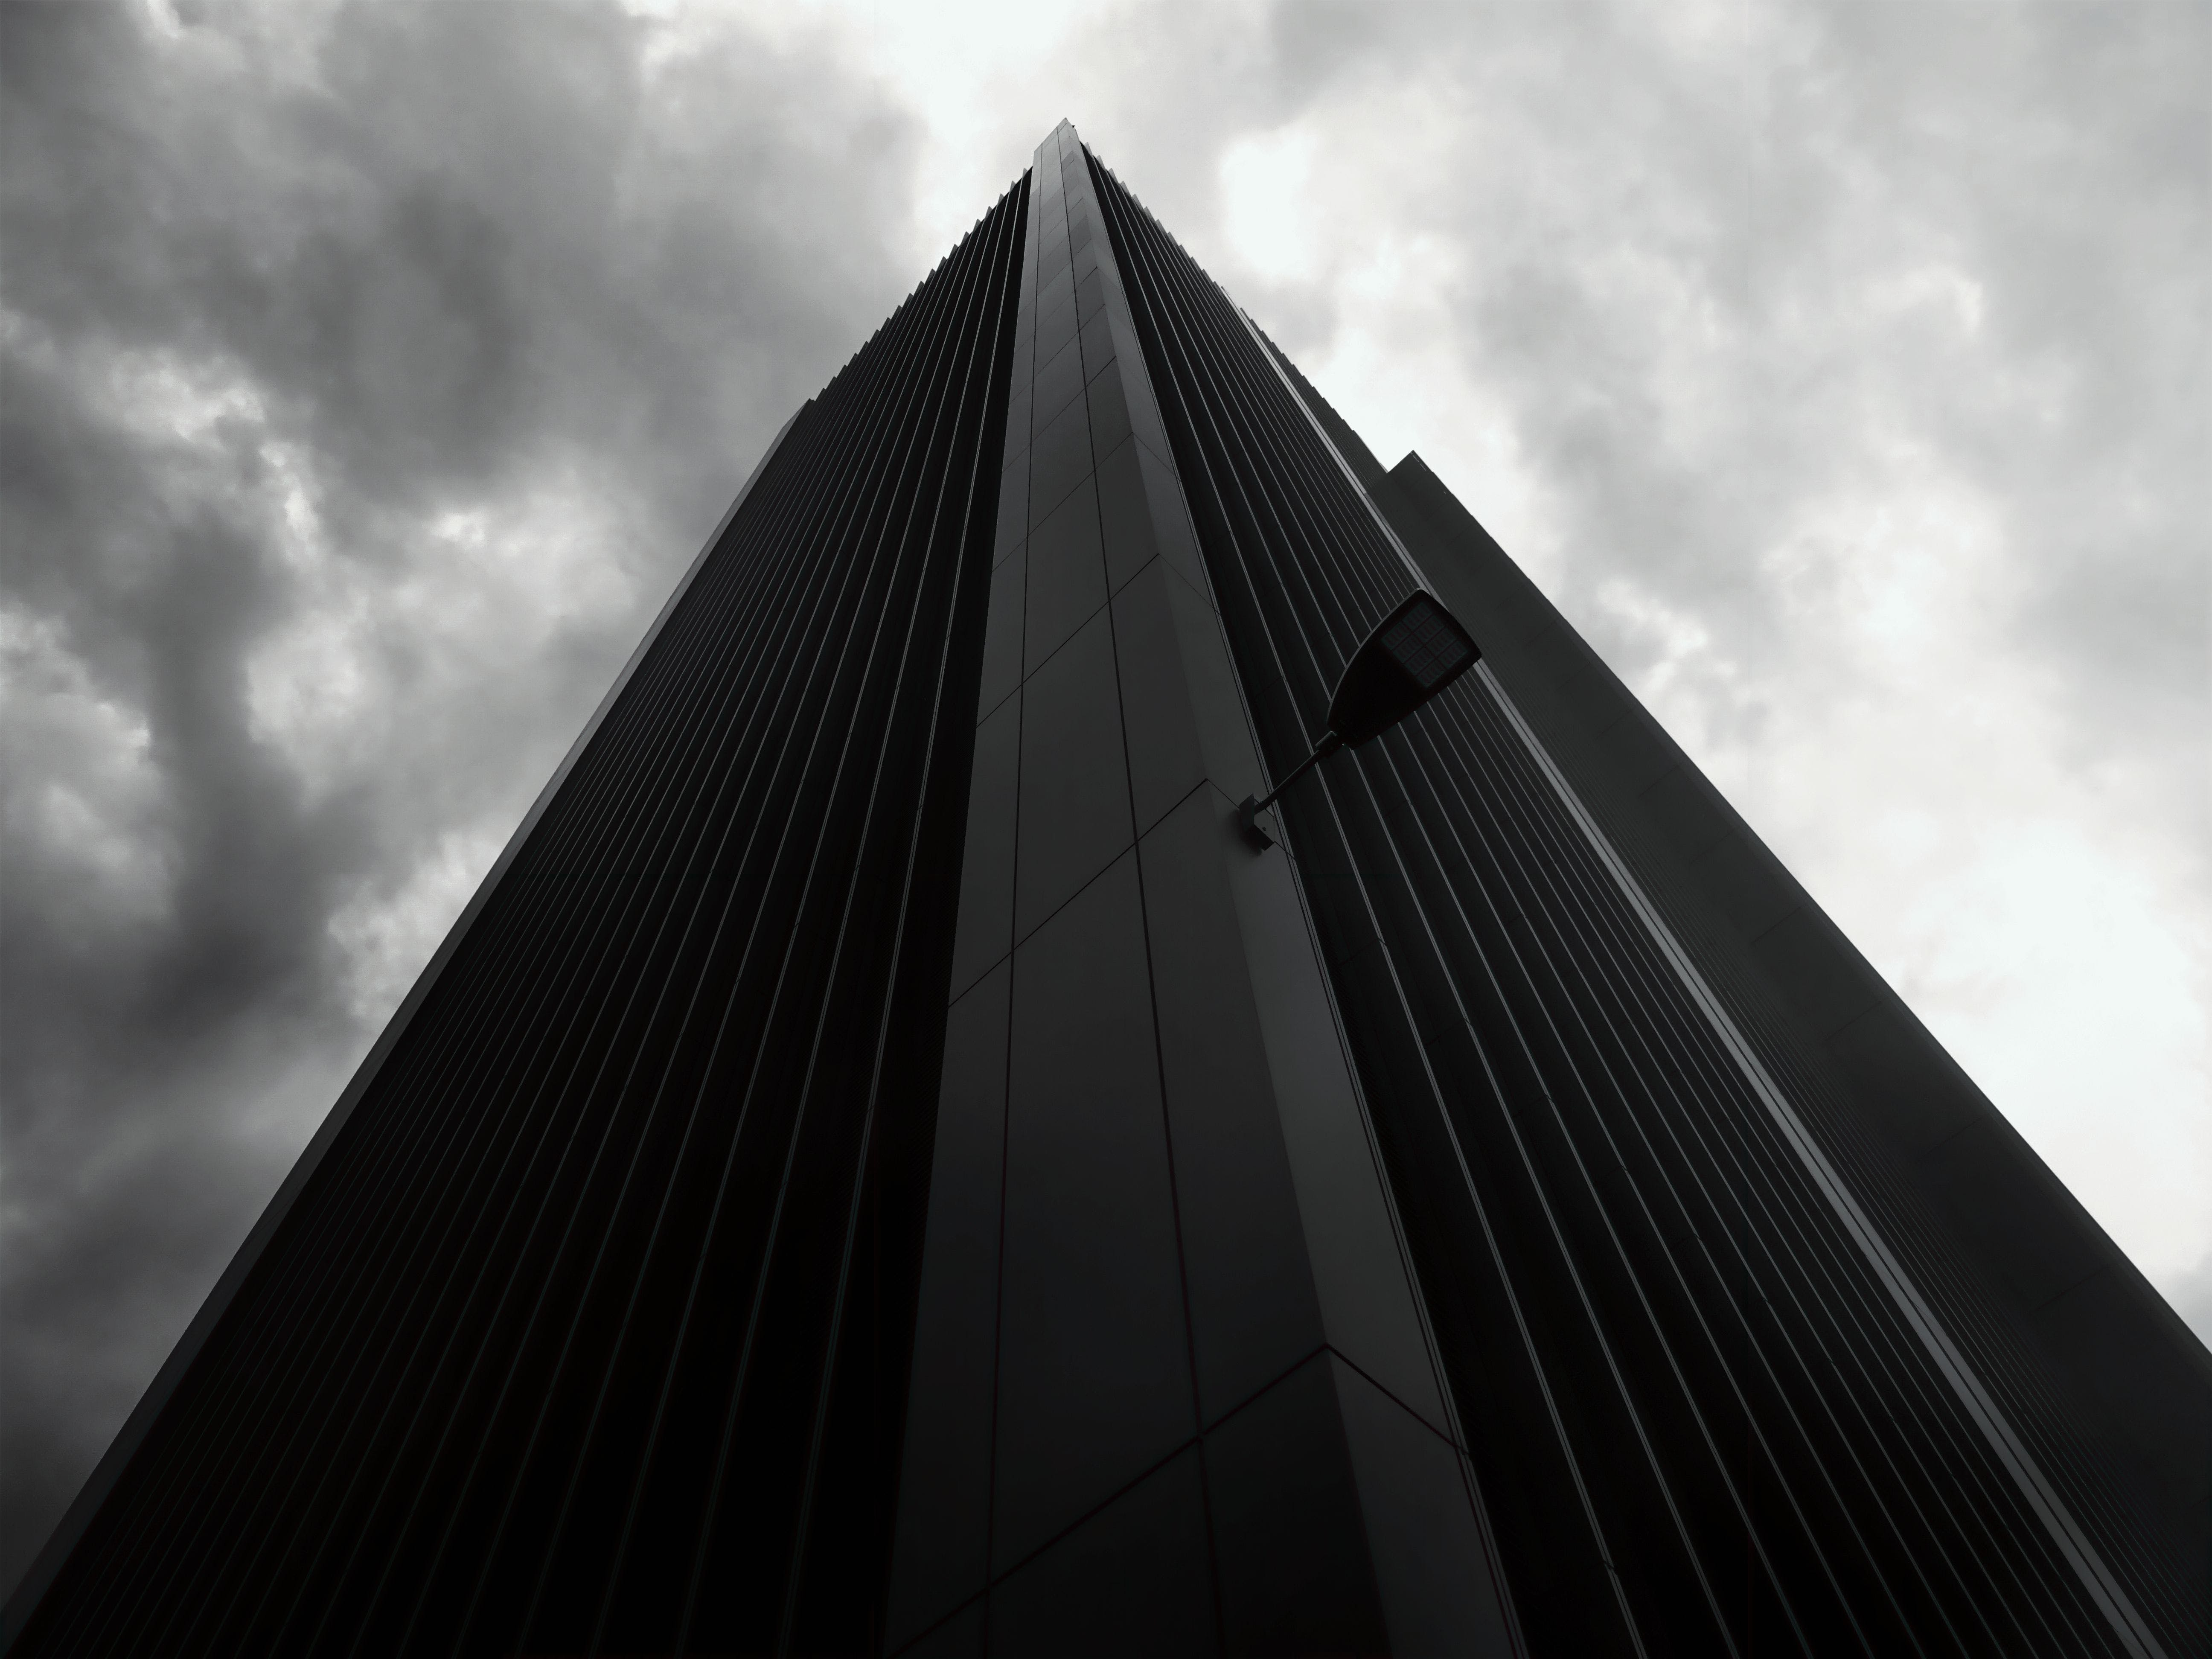 Building Under Cloudy Sky